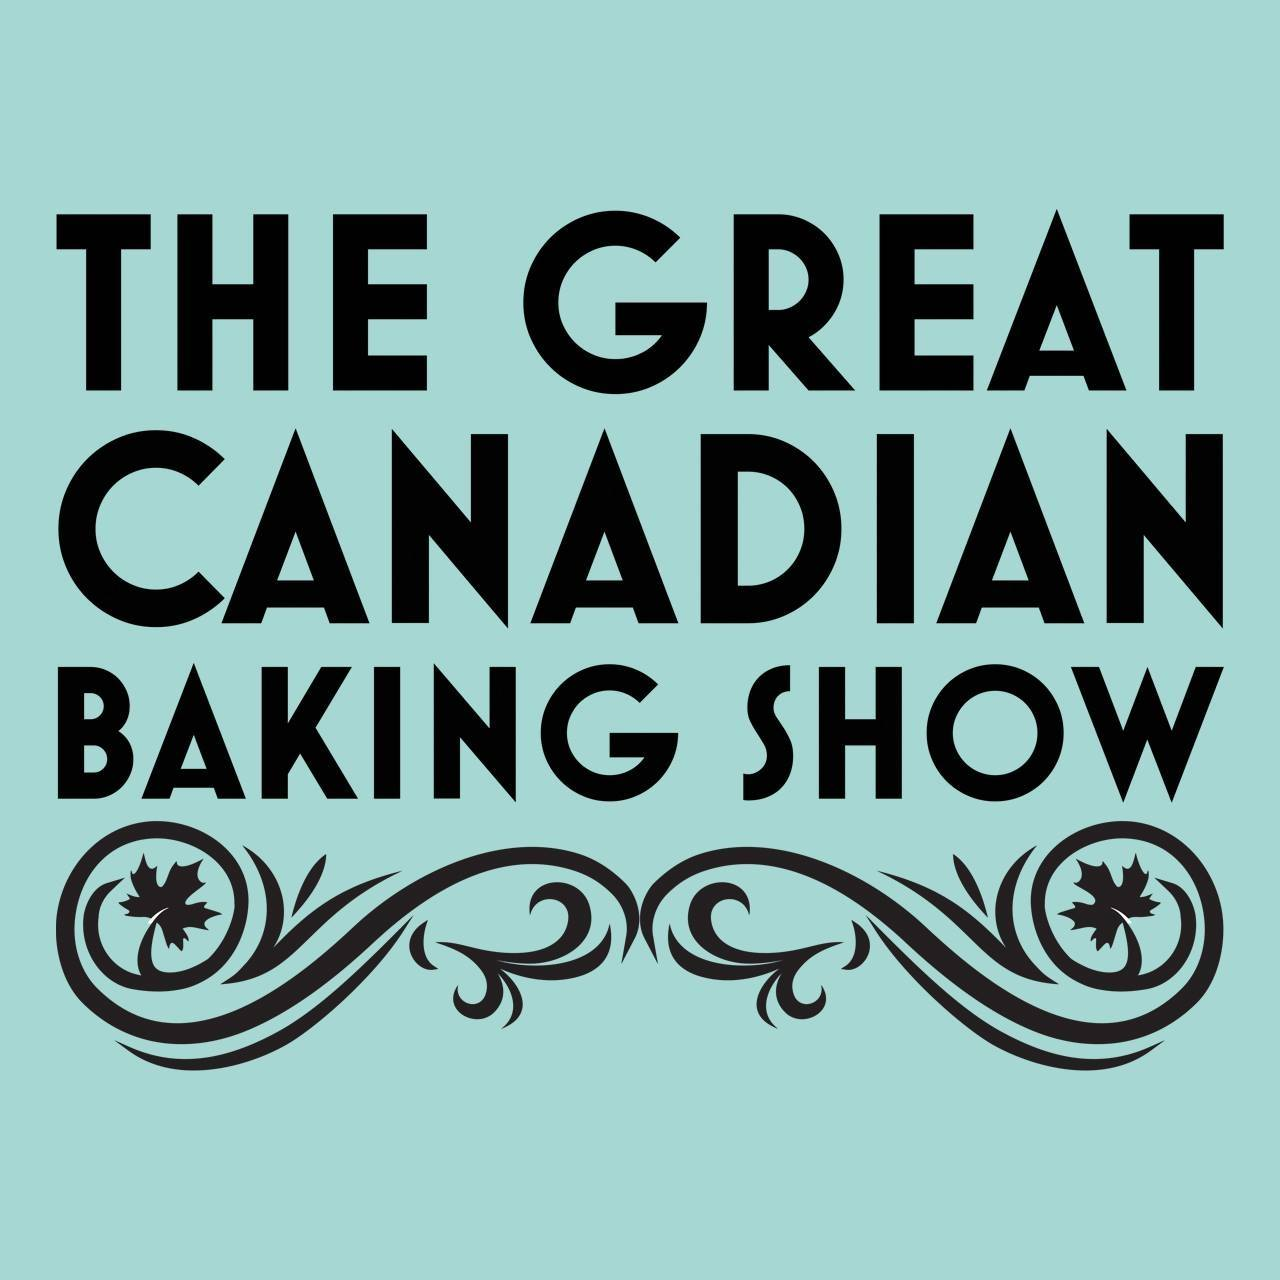 The.Great.Canadian.Baking.Show.S03E02.720p.WEBRip.x264-CookieMonster